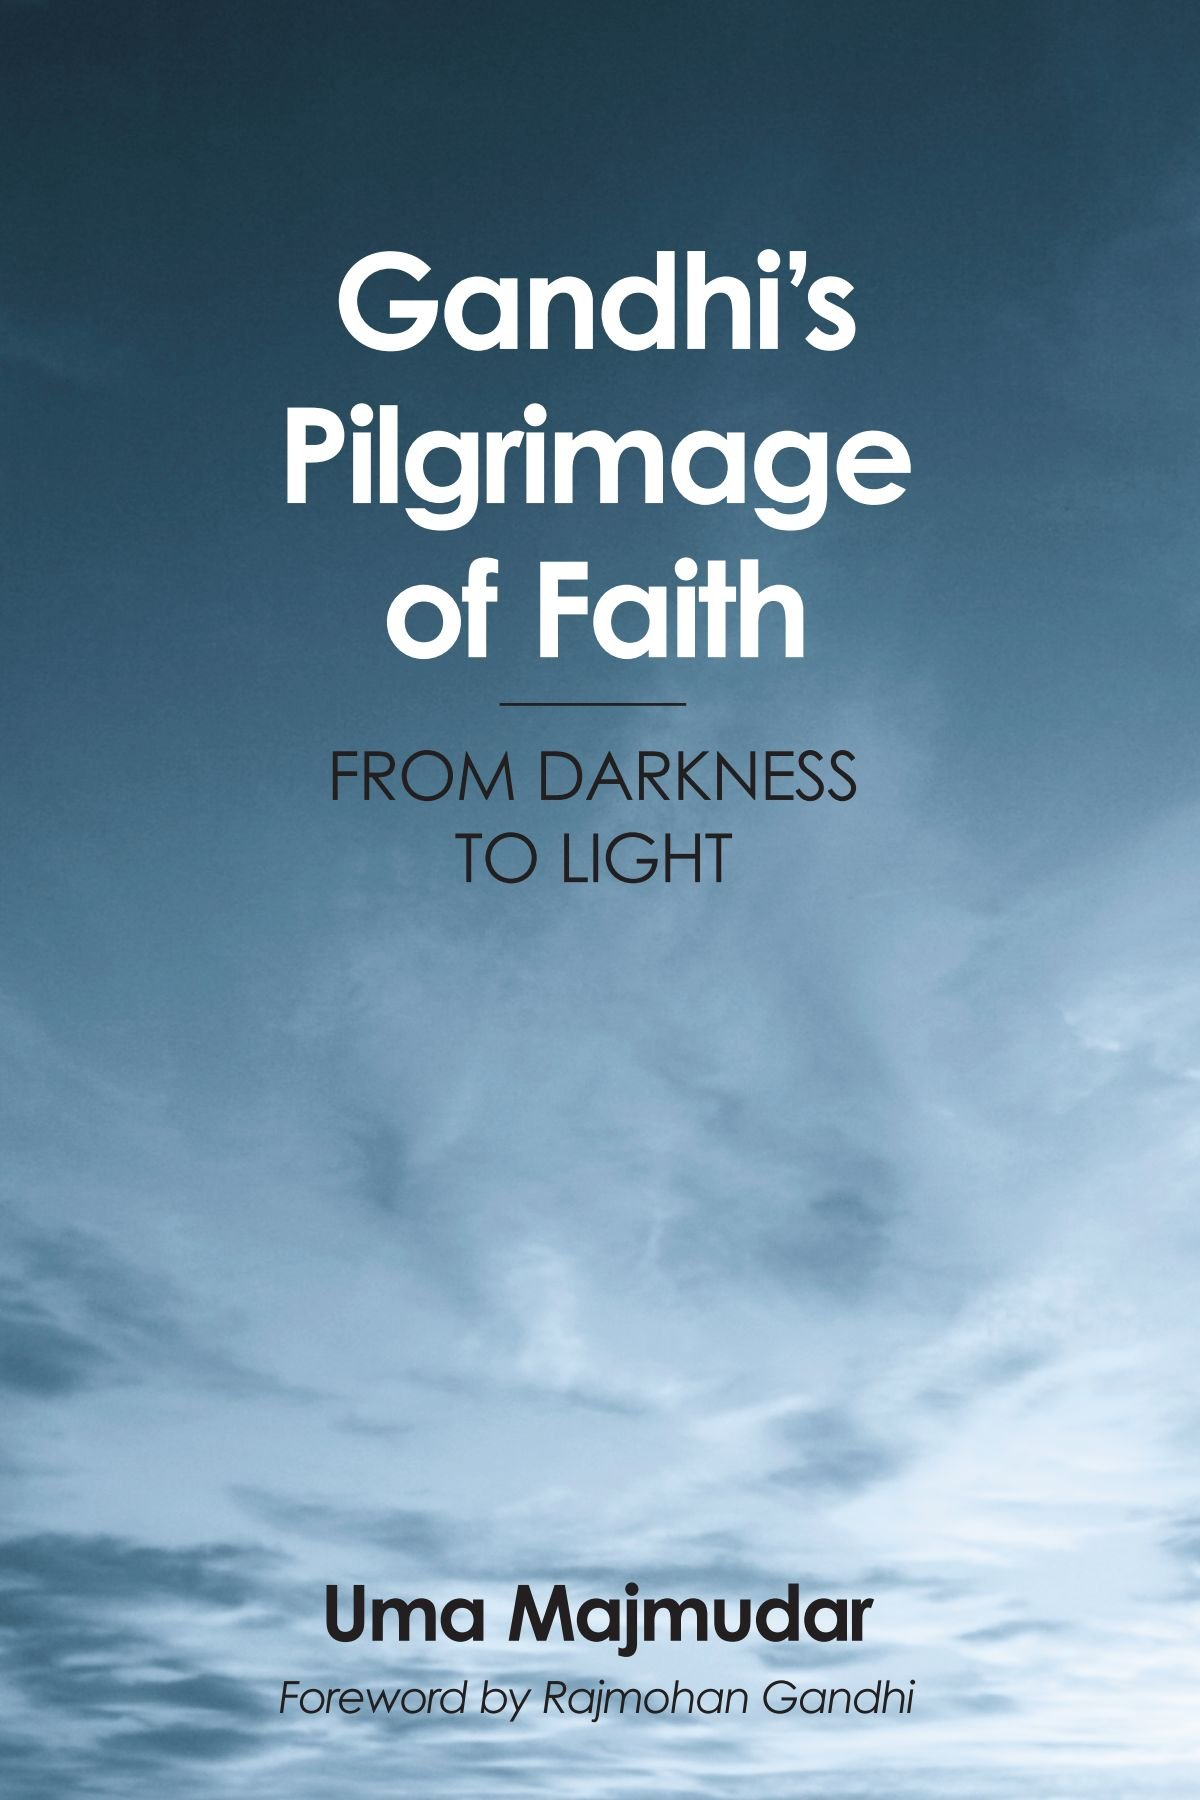 Gandhi's Pilgrimage Of Faith: From Darkness To Light